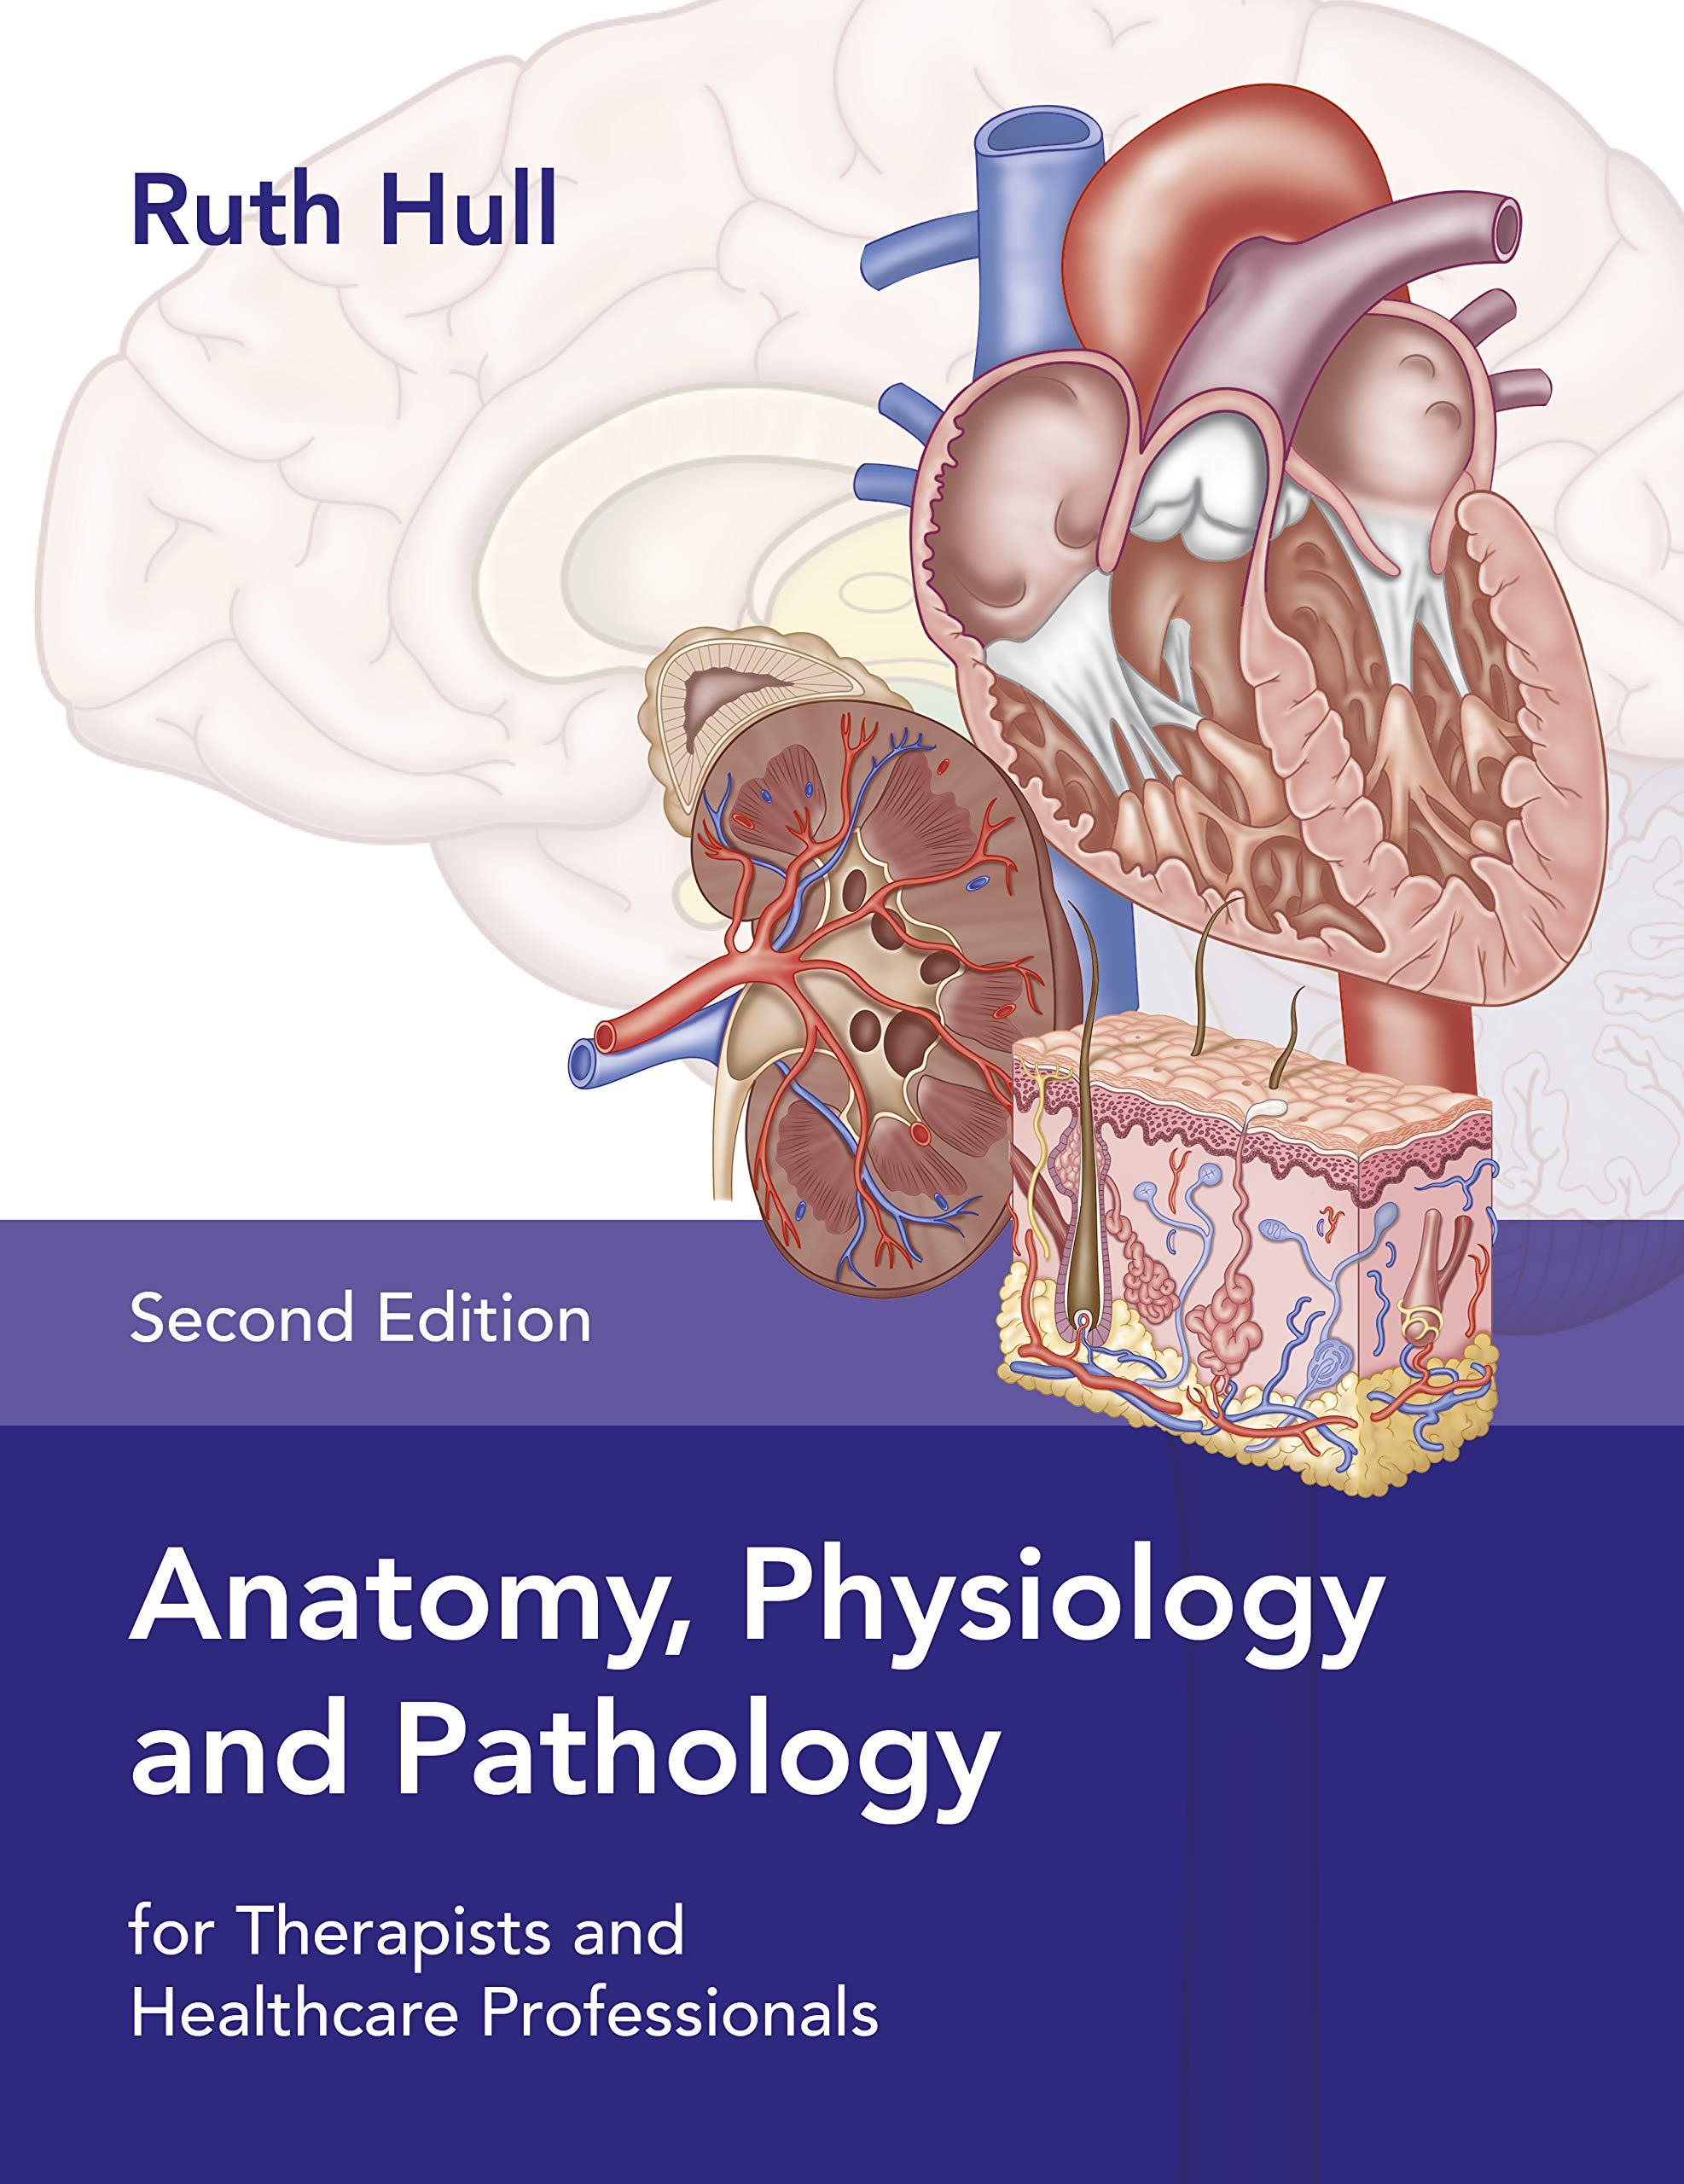 Anatomy, Physiology and Pathology for Therapists and Healthcare Professionals 2nd Edition